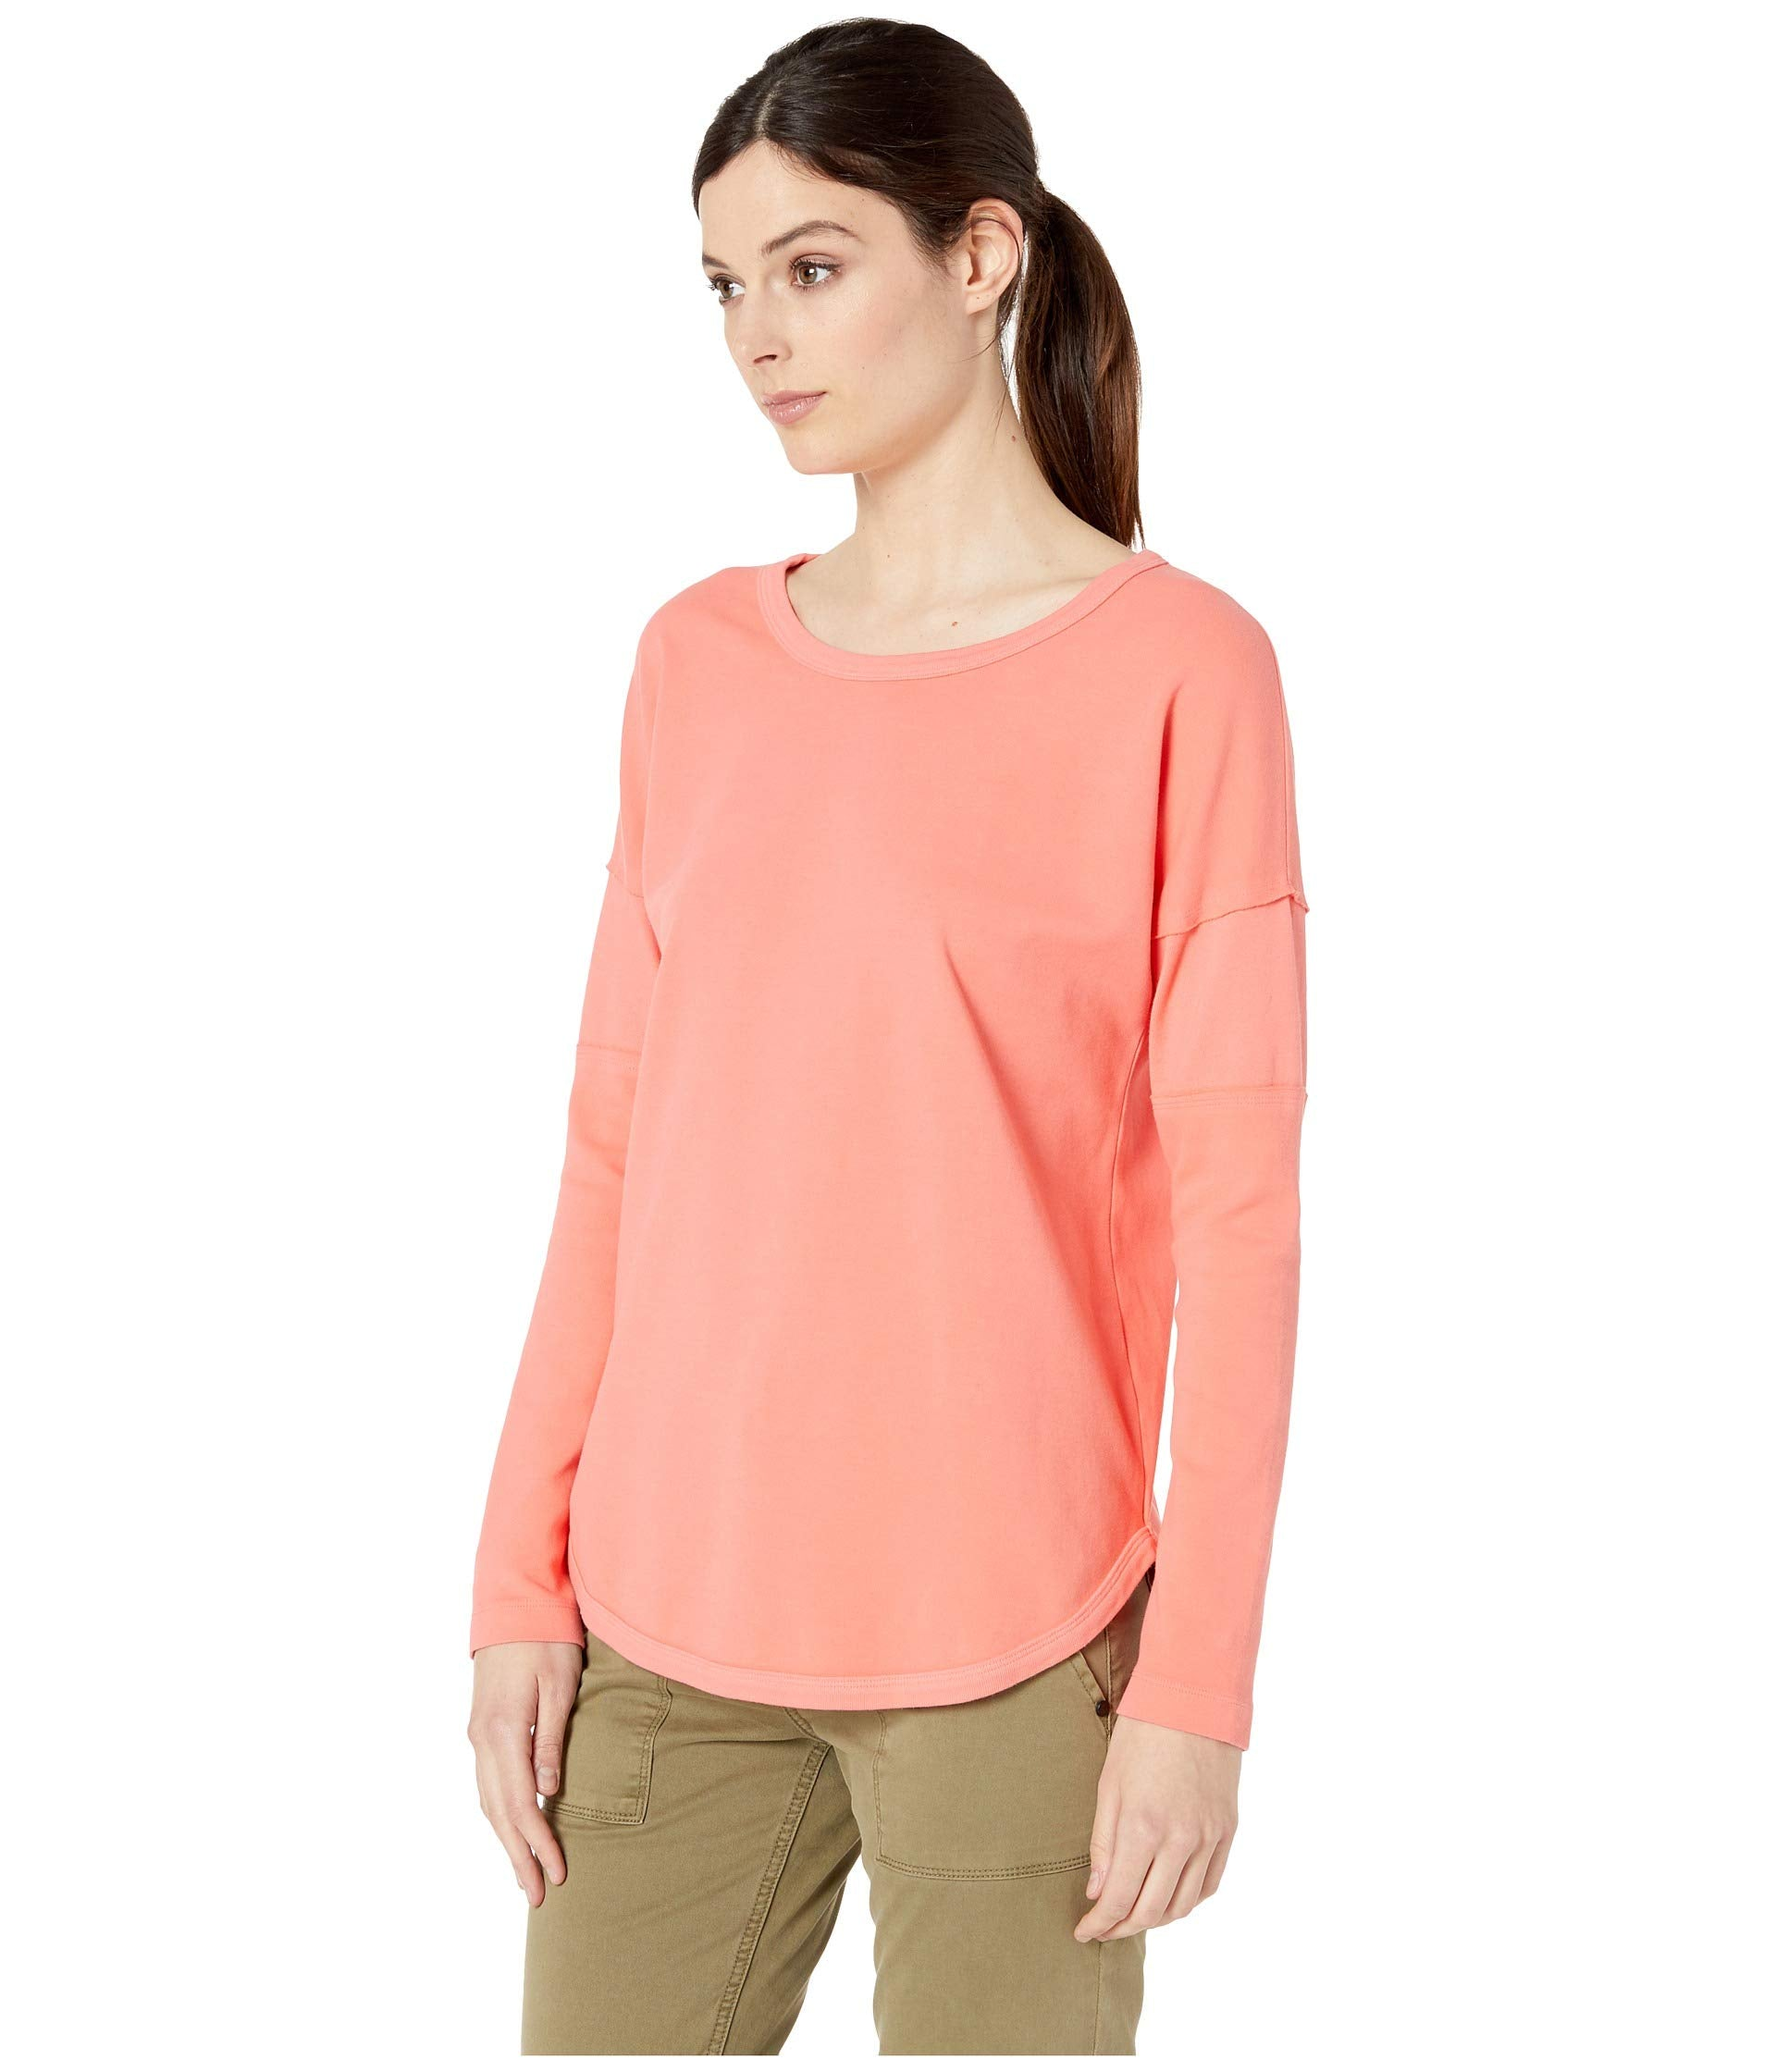 Cotton Interlock Crew Neck Pullover with Back Neck Lacing